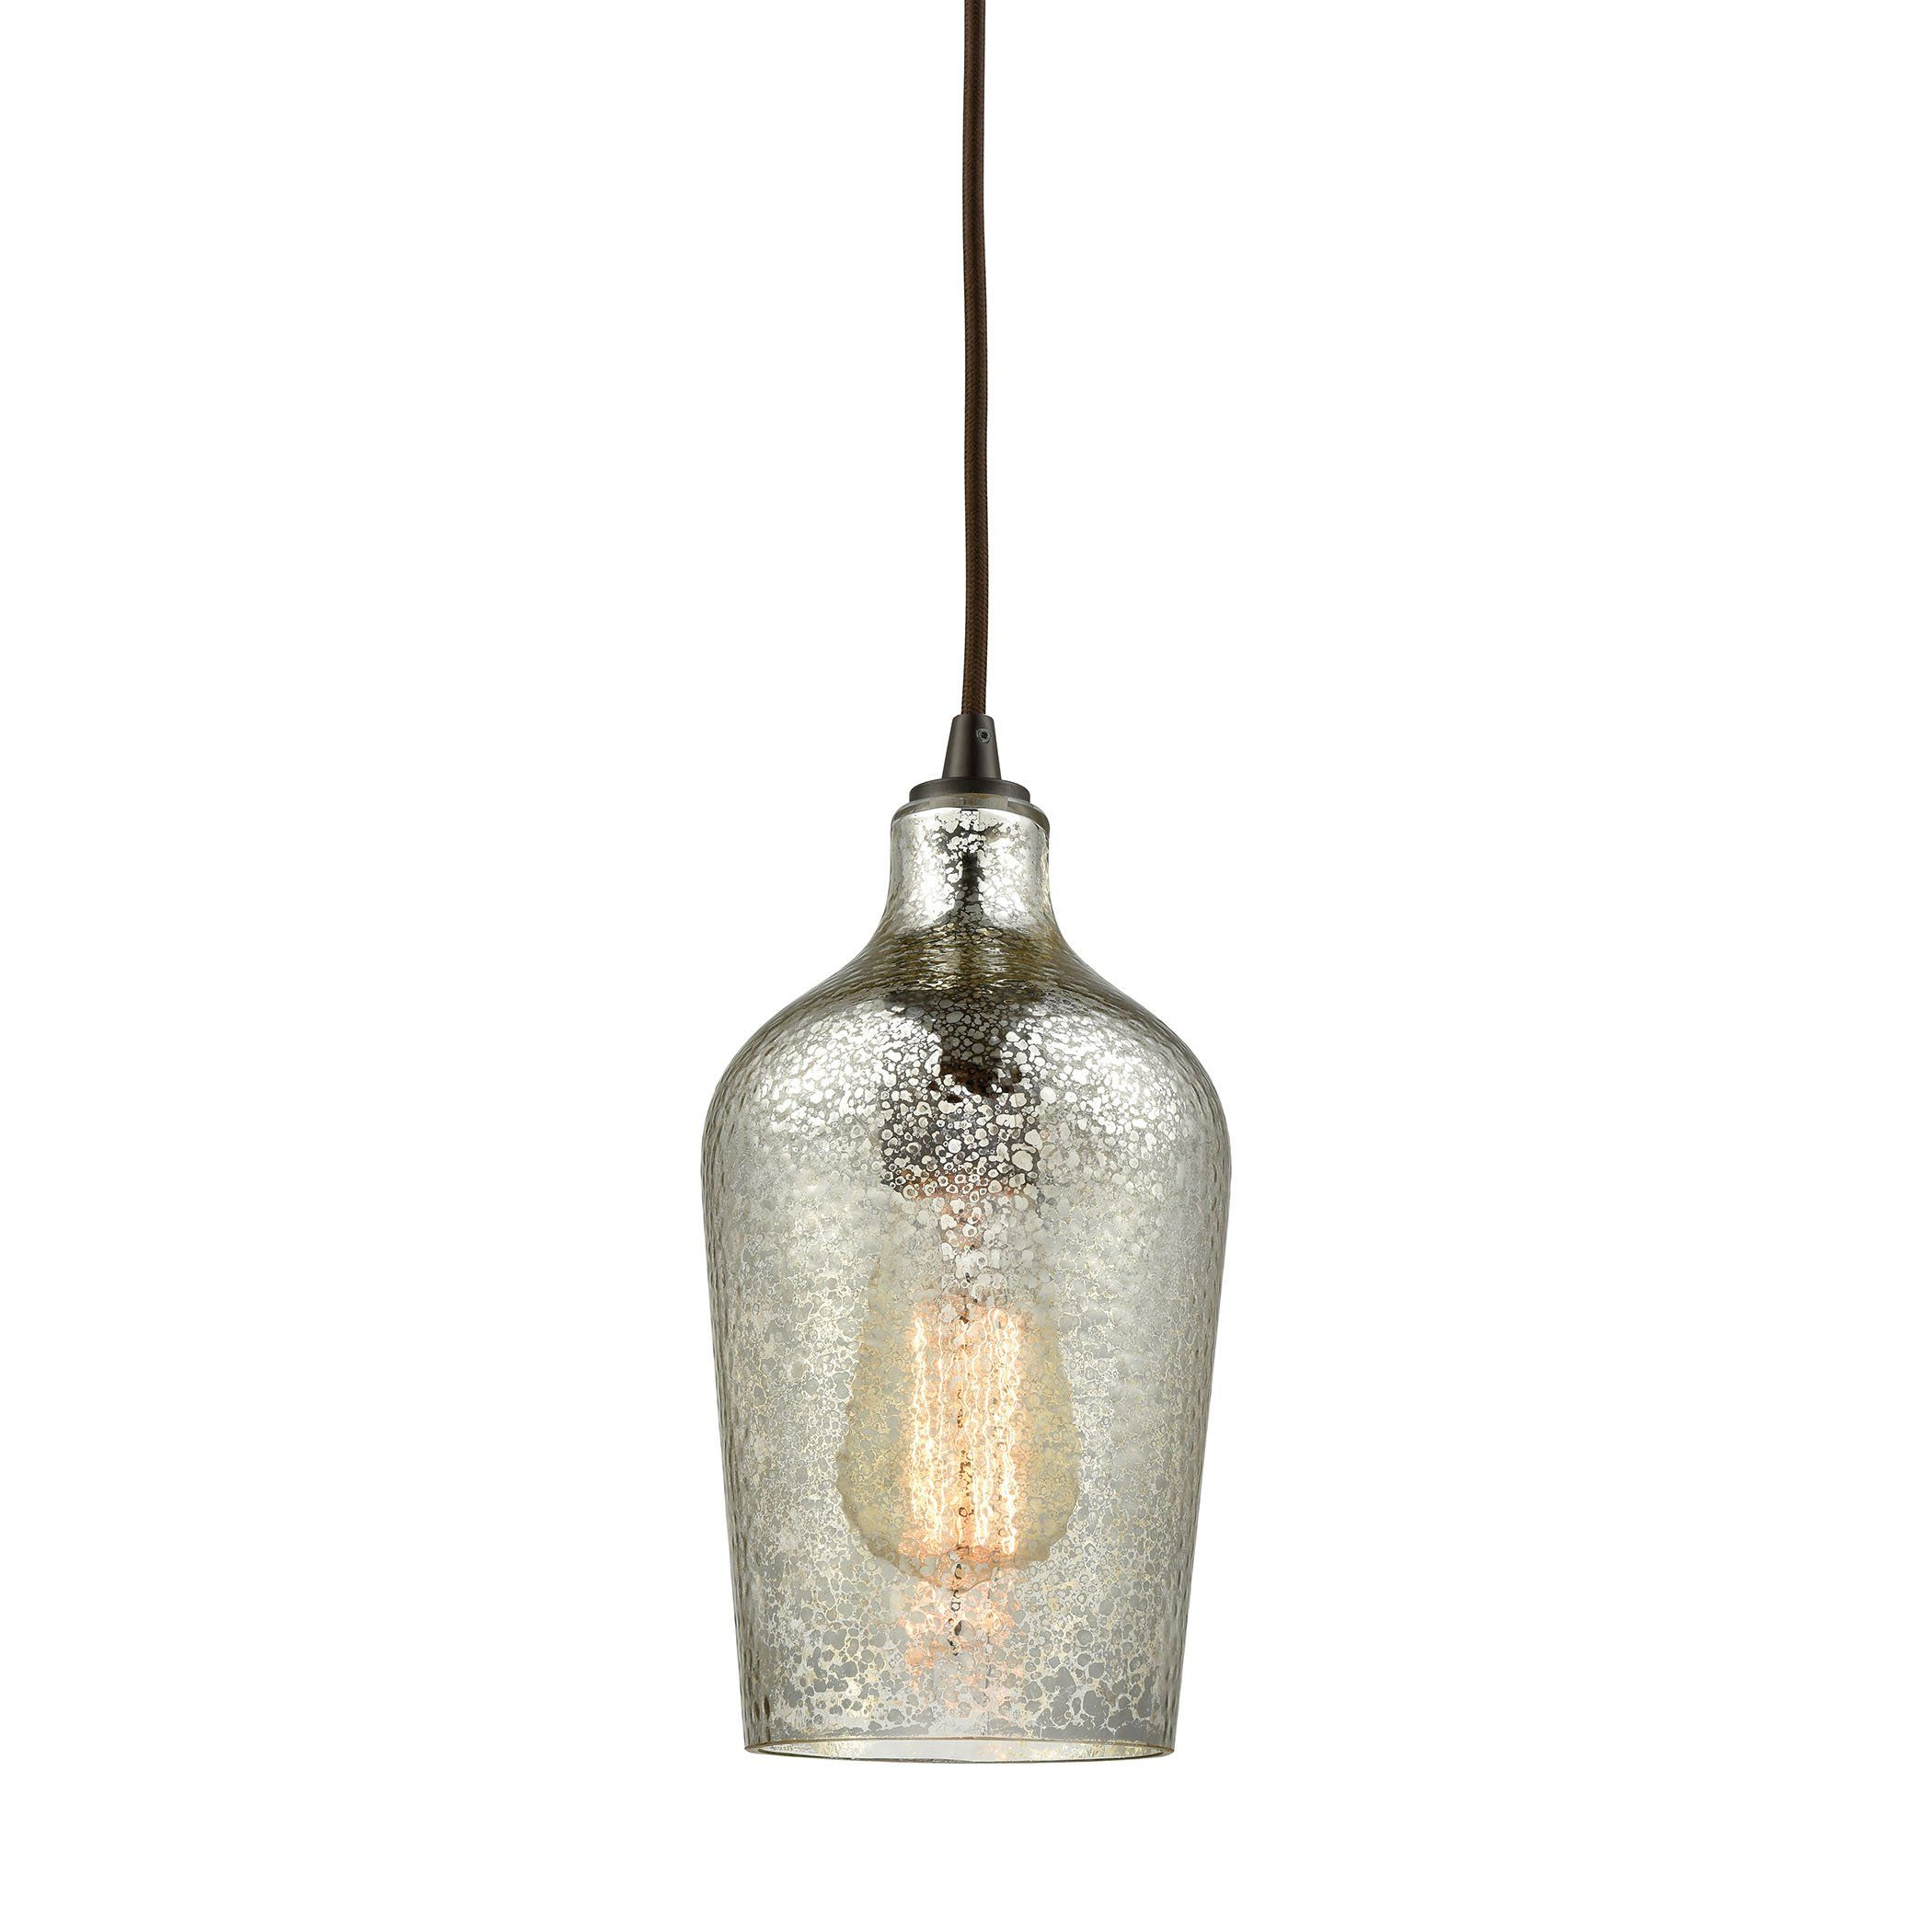 Hammered Glass Light Pendant In Oil Rubbed Bronze With Hammered